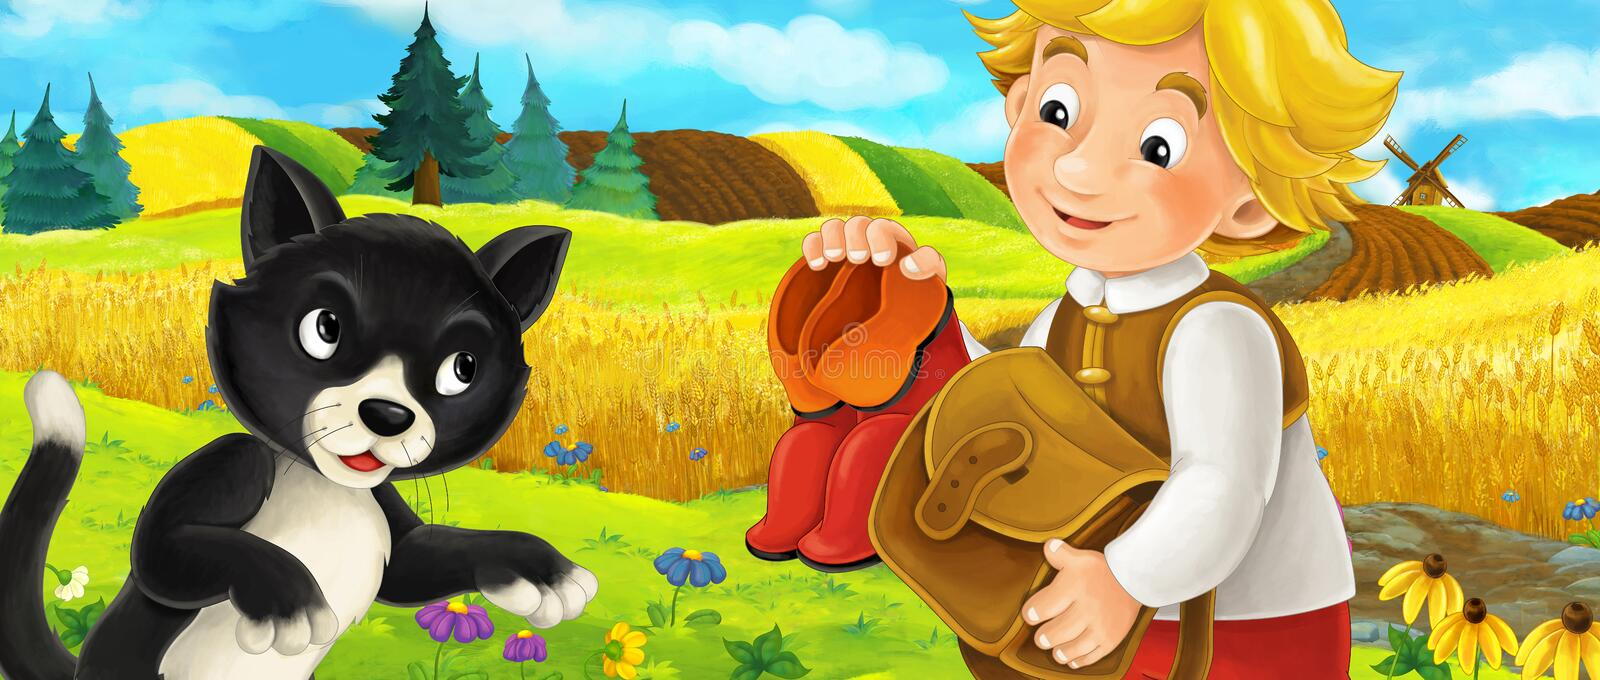 Cartoon scene of cat and a boy on the farm field - boy is giving a gift to a cat royalty free illustration